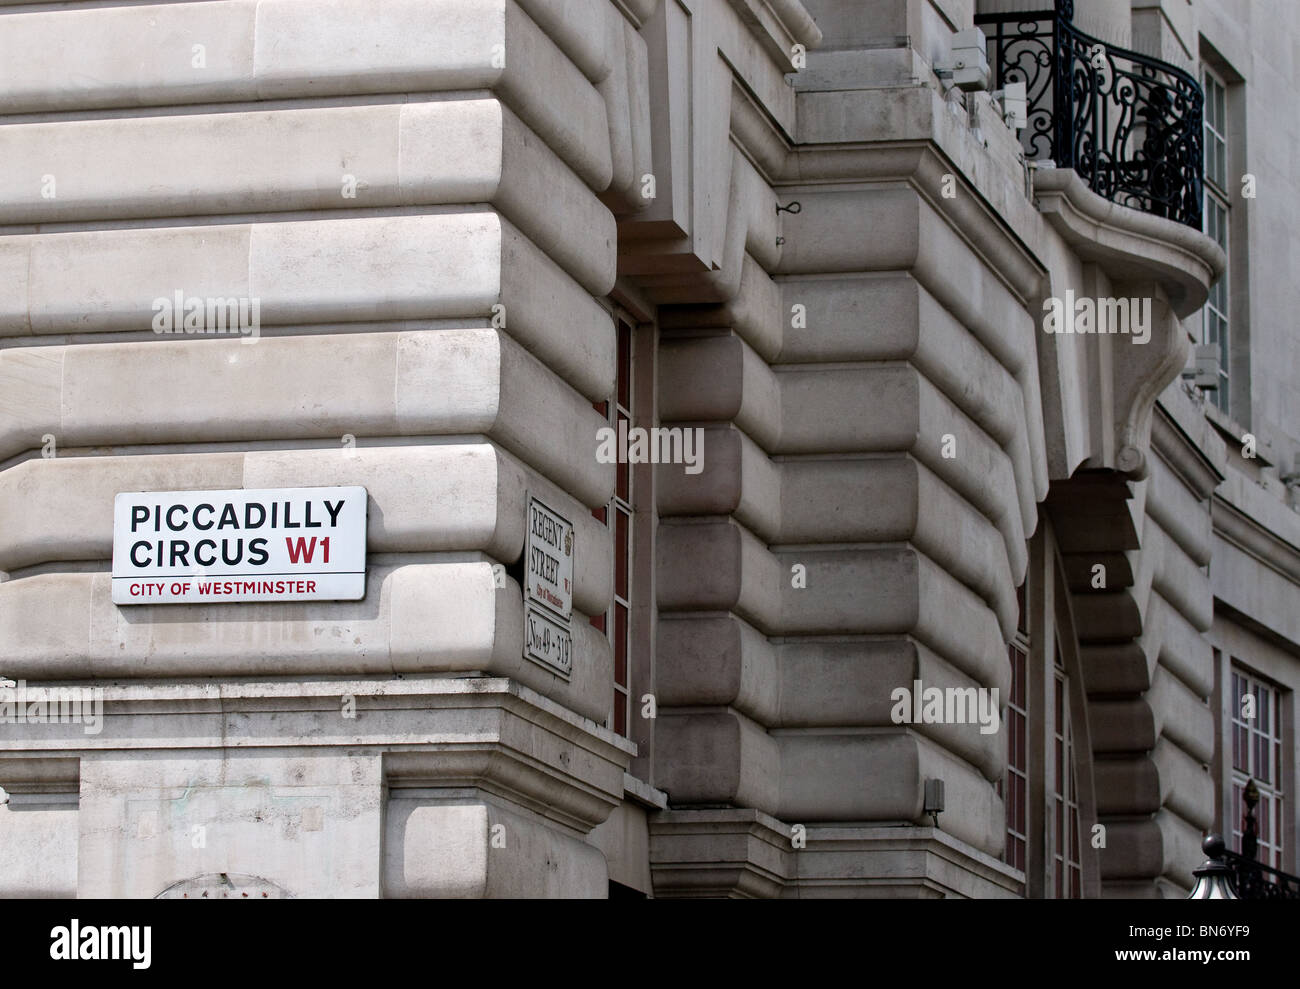 A street sign on the wall of a building at Picadilly Circus in London. - Stock Image